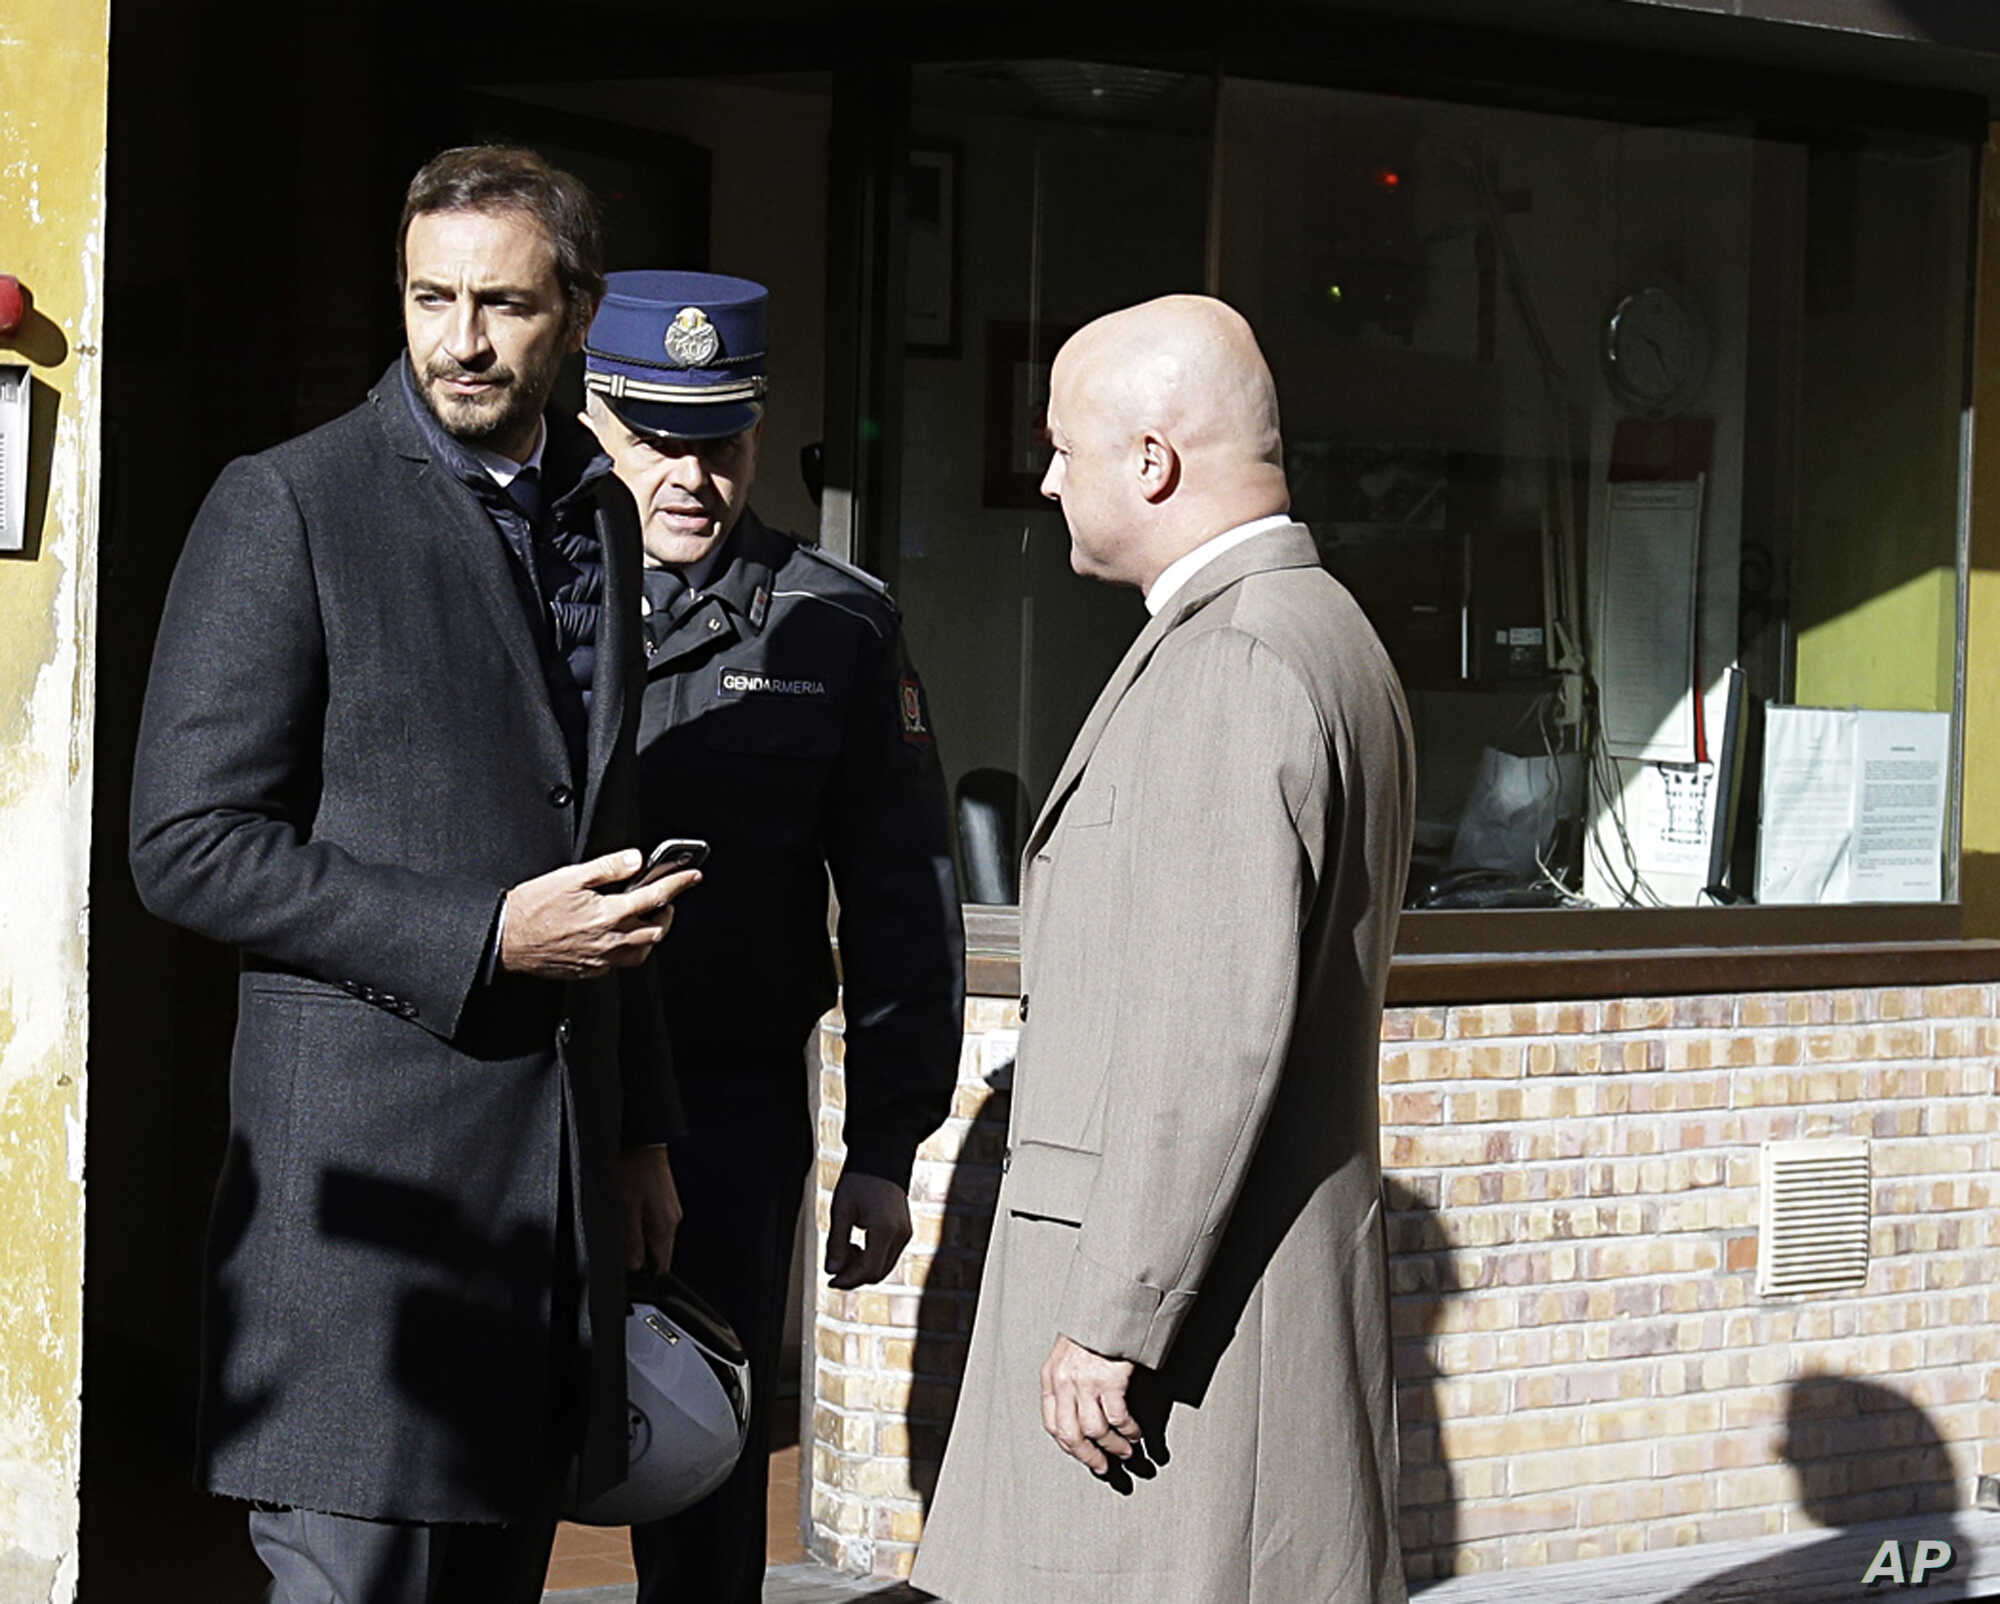 Italian journalists Gianluigi Nuzzi, right, and Emiliano Fittipaldi, left, talk with a Vatican Gendarmie guard at the Perugino entrance of the Vatican, Nov. 24, 2015.